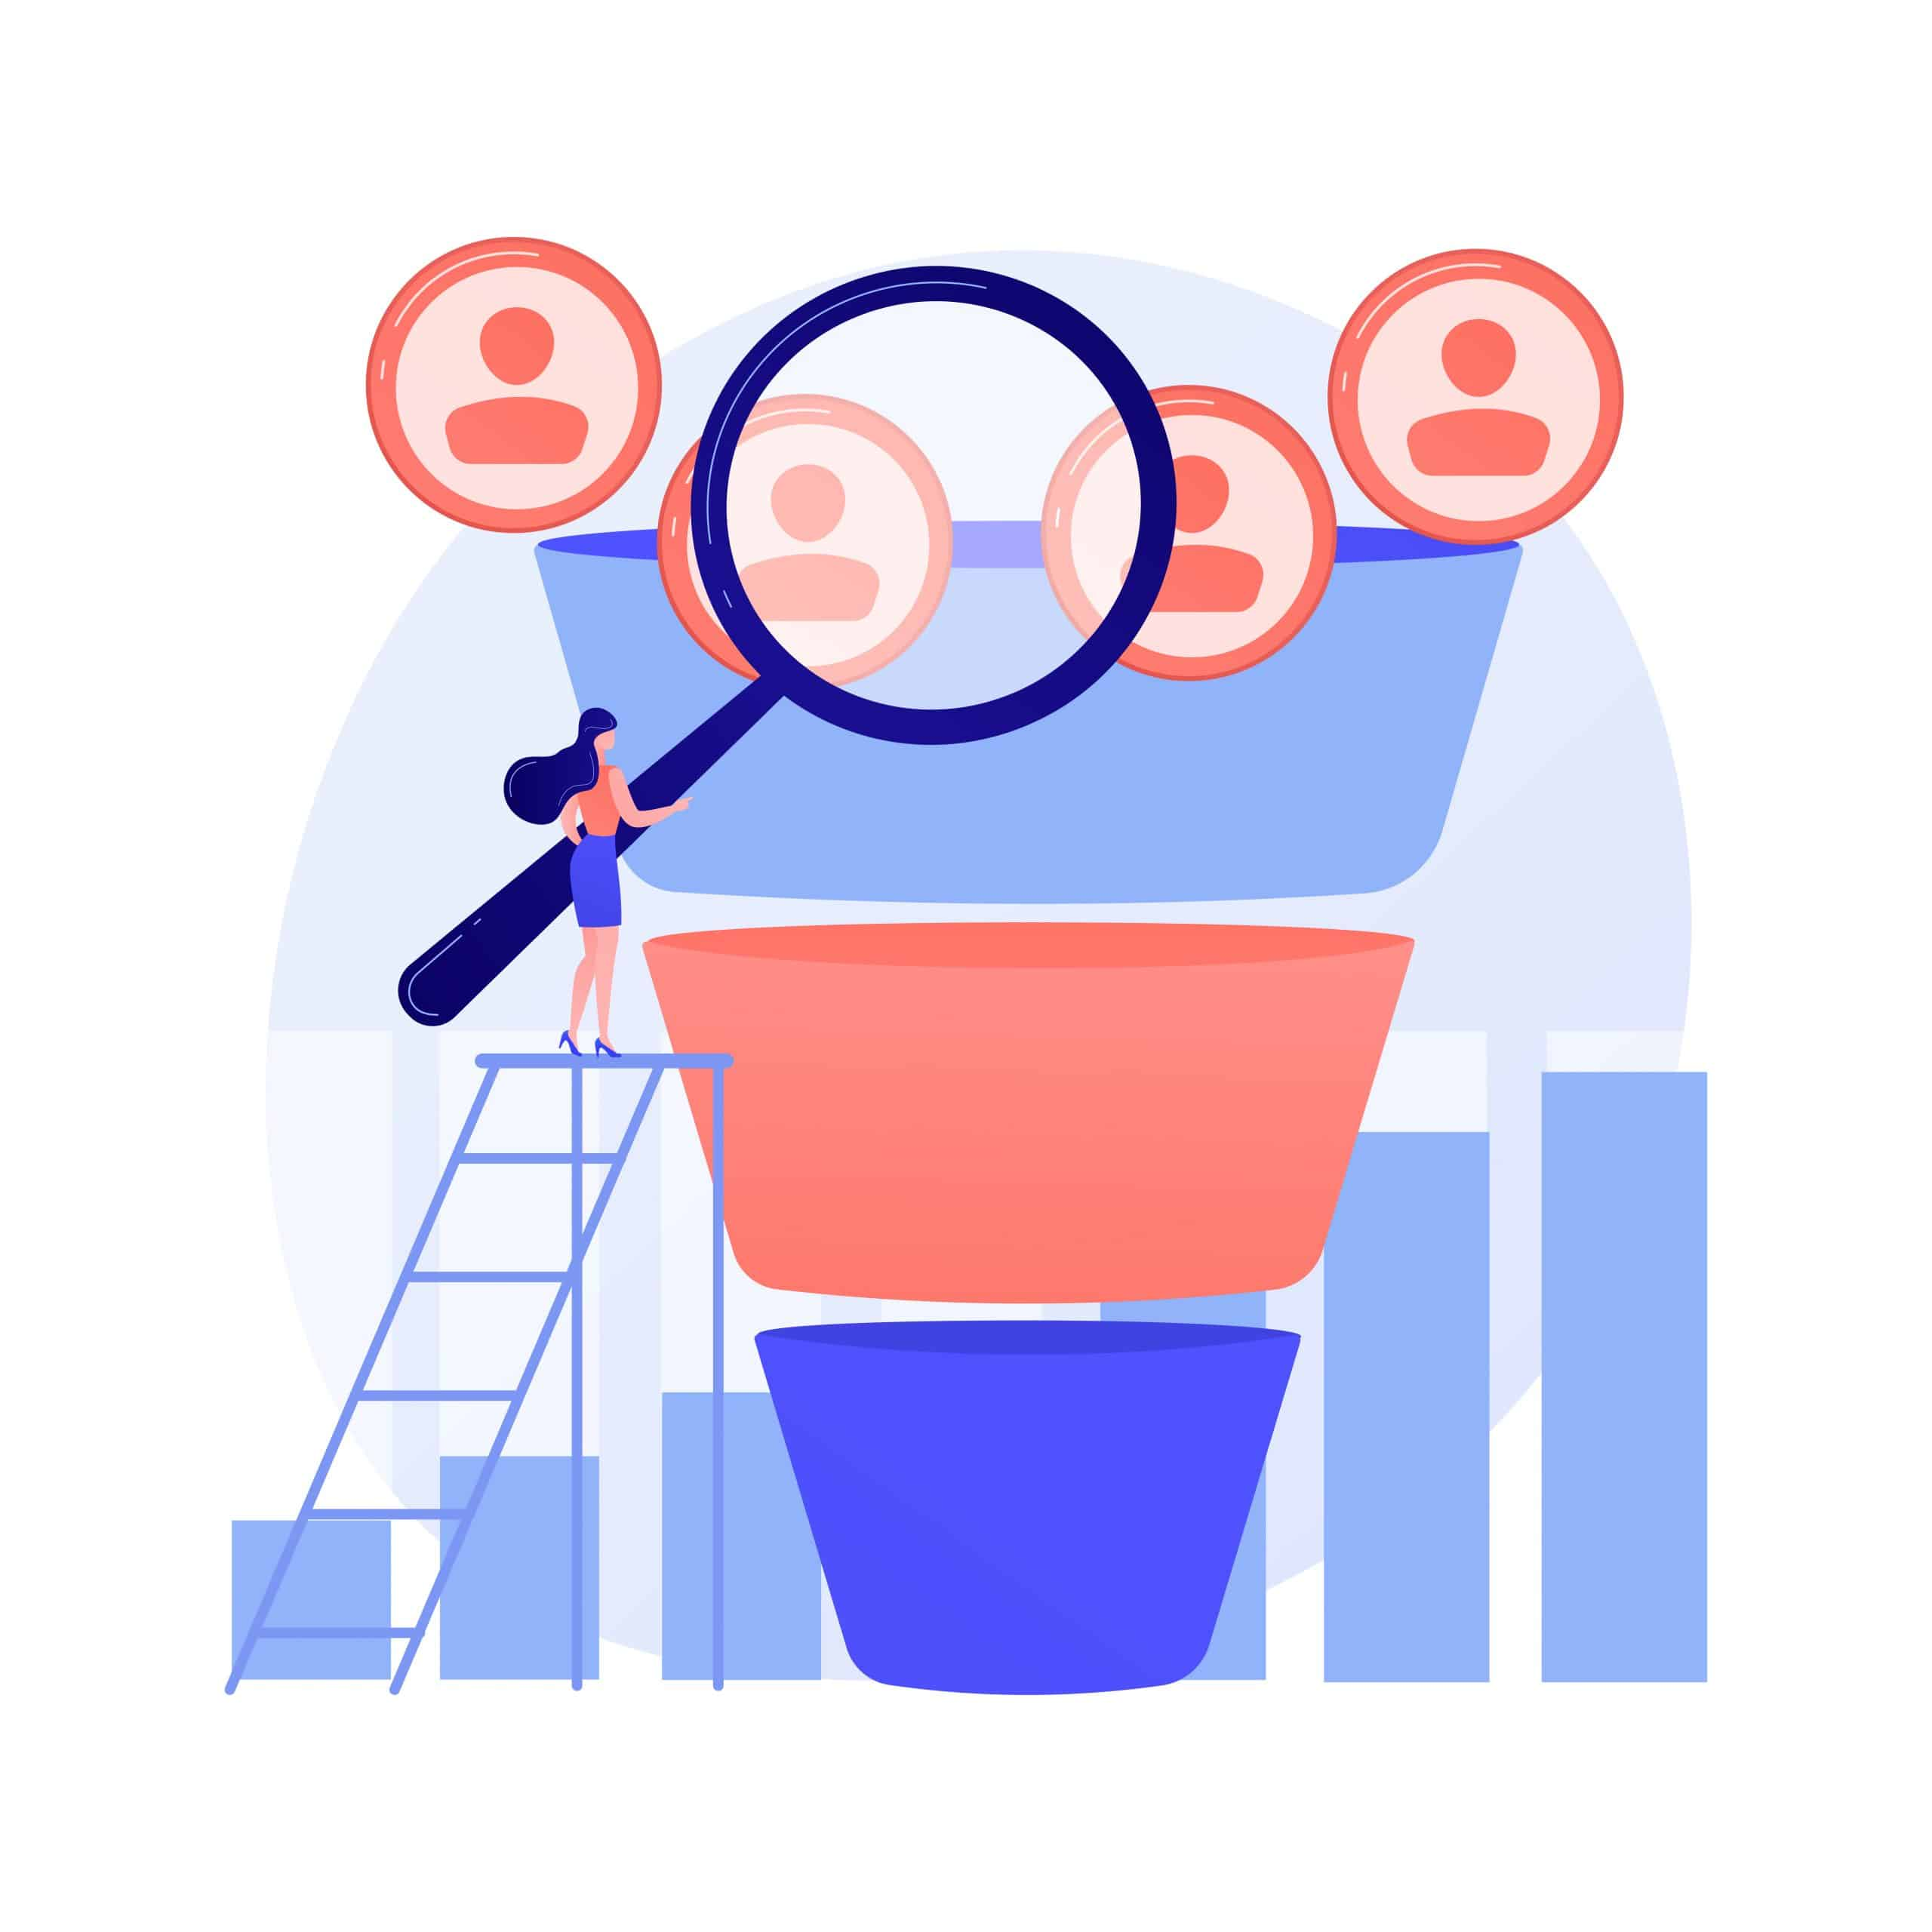 Funnels and emarketing tools